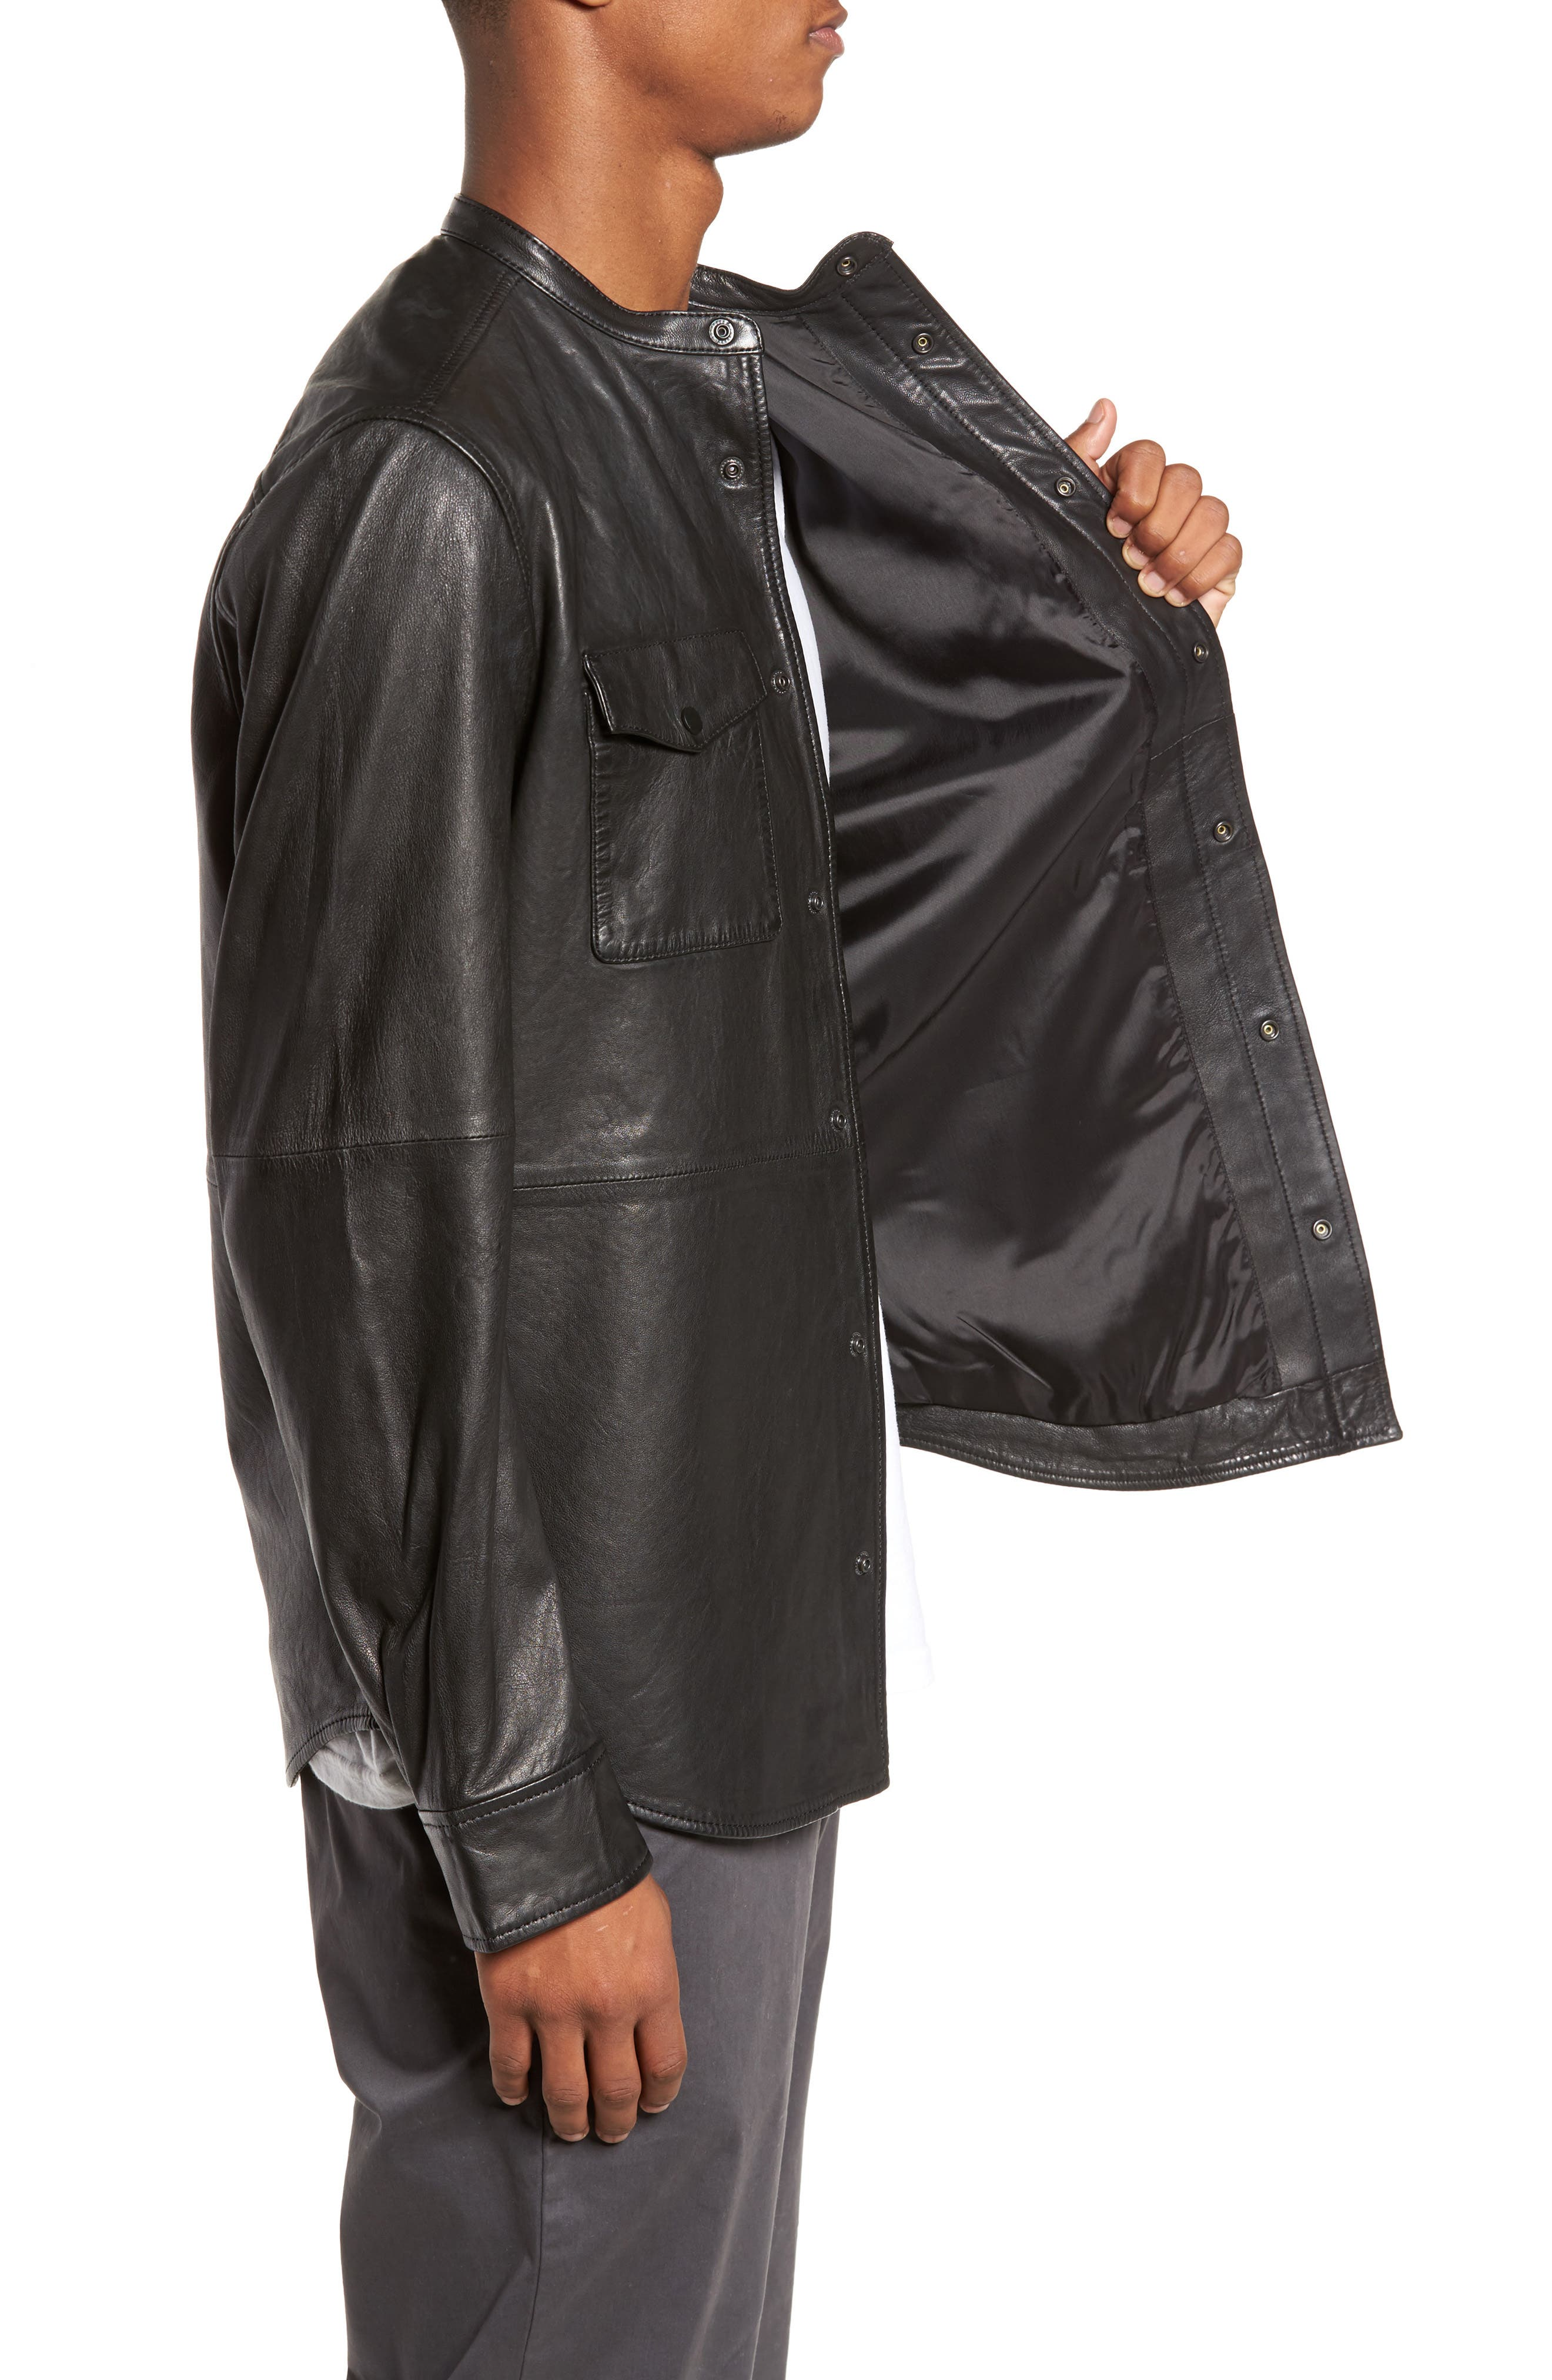 Atwater Leather Shirt Jacket,                             Alternate thumbnail 3, color,                             Black